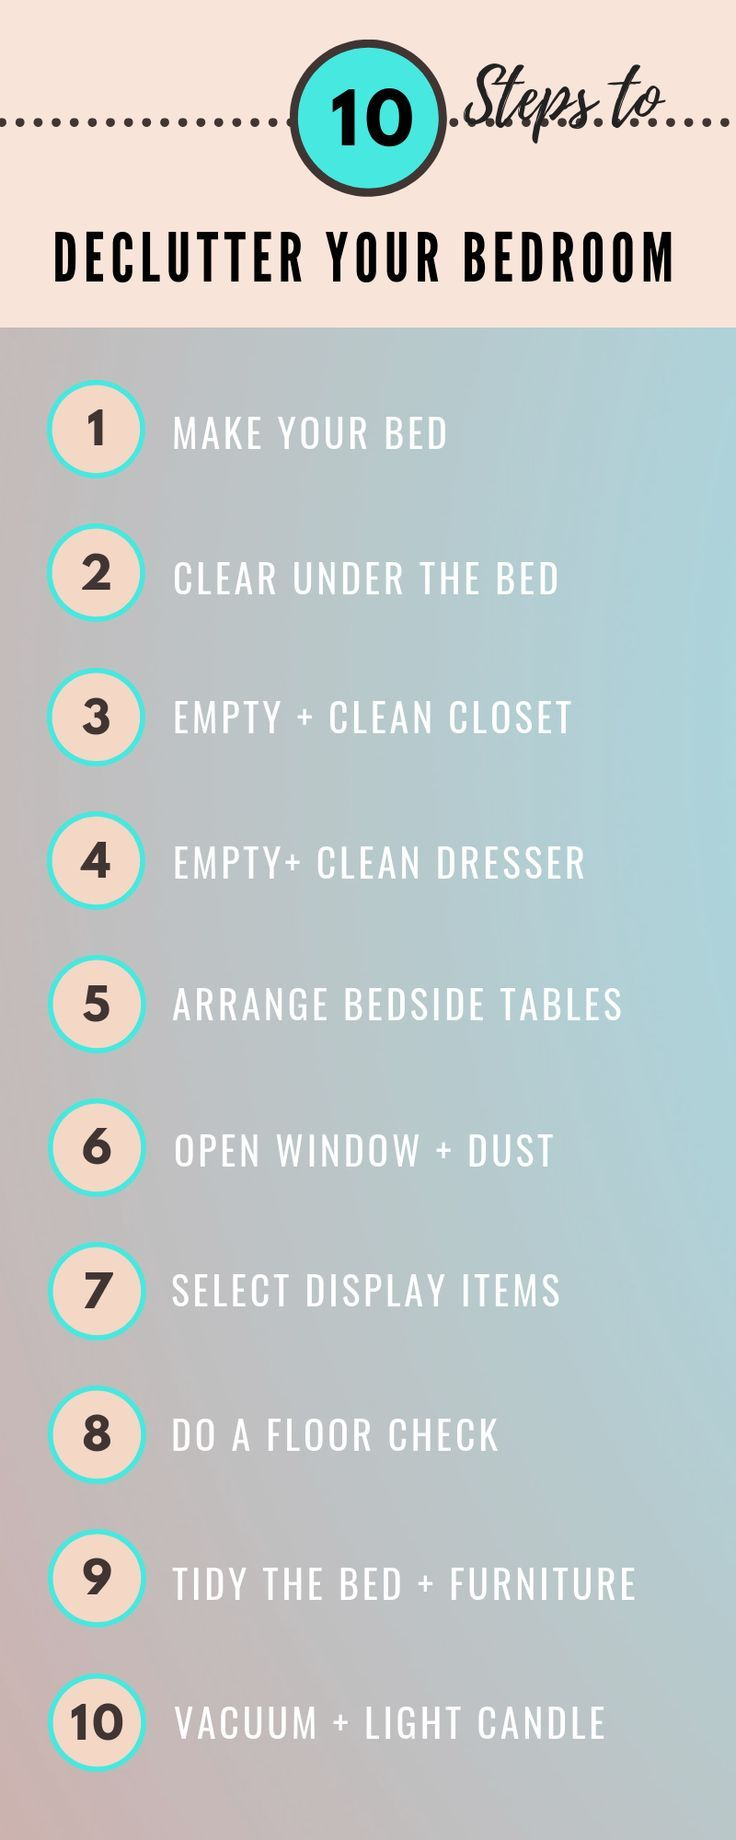 The Best Way to Declutter Your Bedroom- in 10 Steps